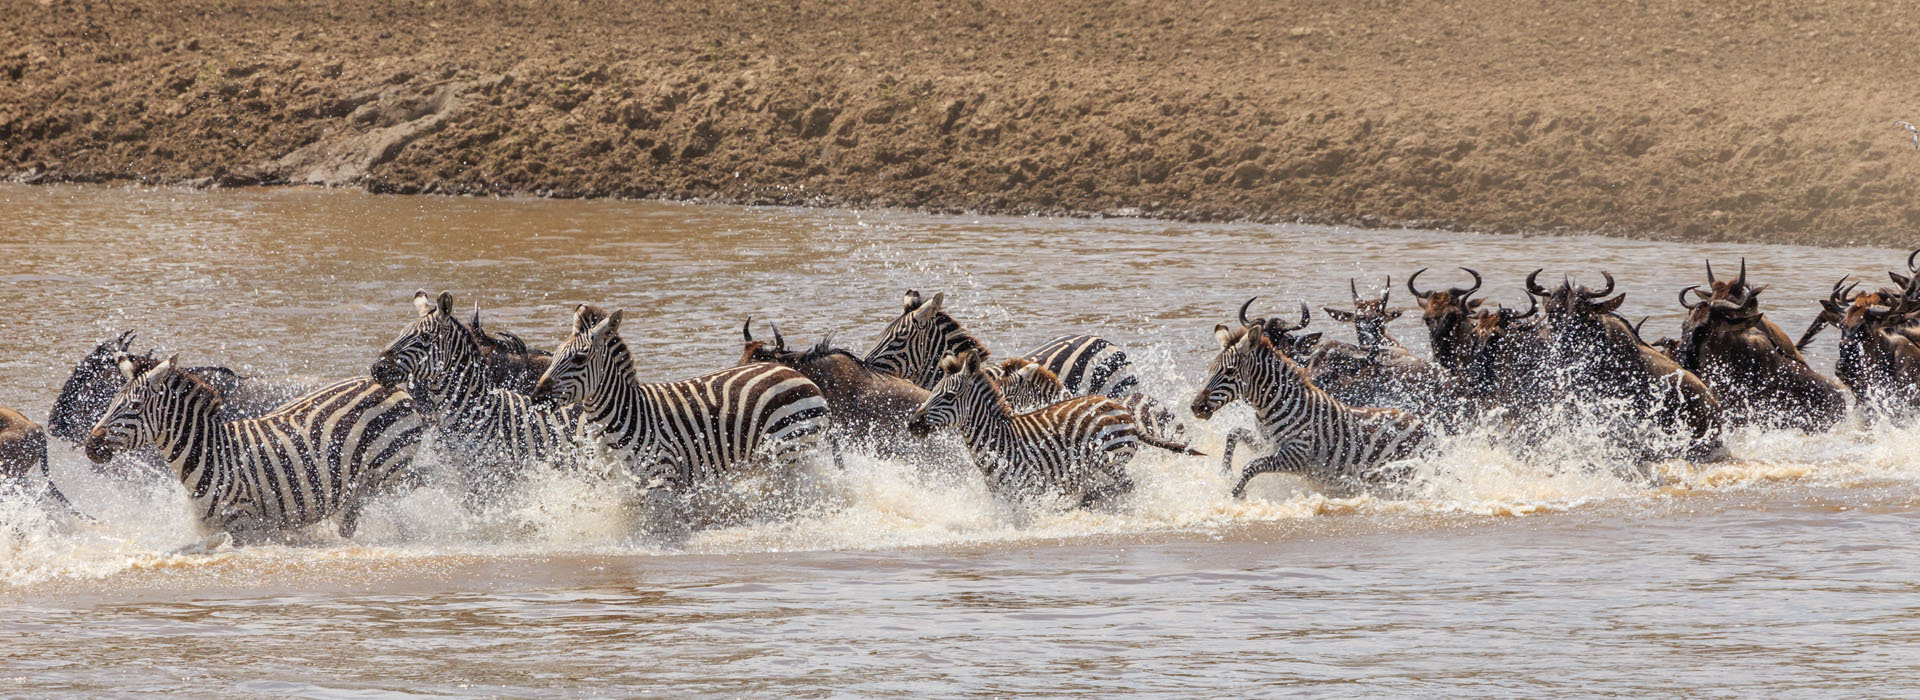 Top Destinations in Kenya - Maasai Mara - African Adventure Specialists